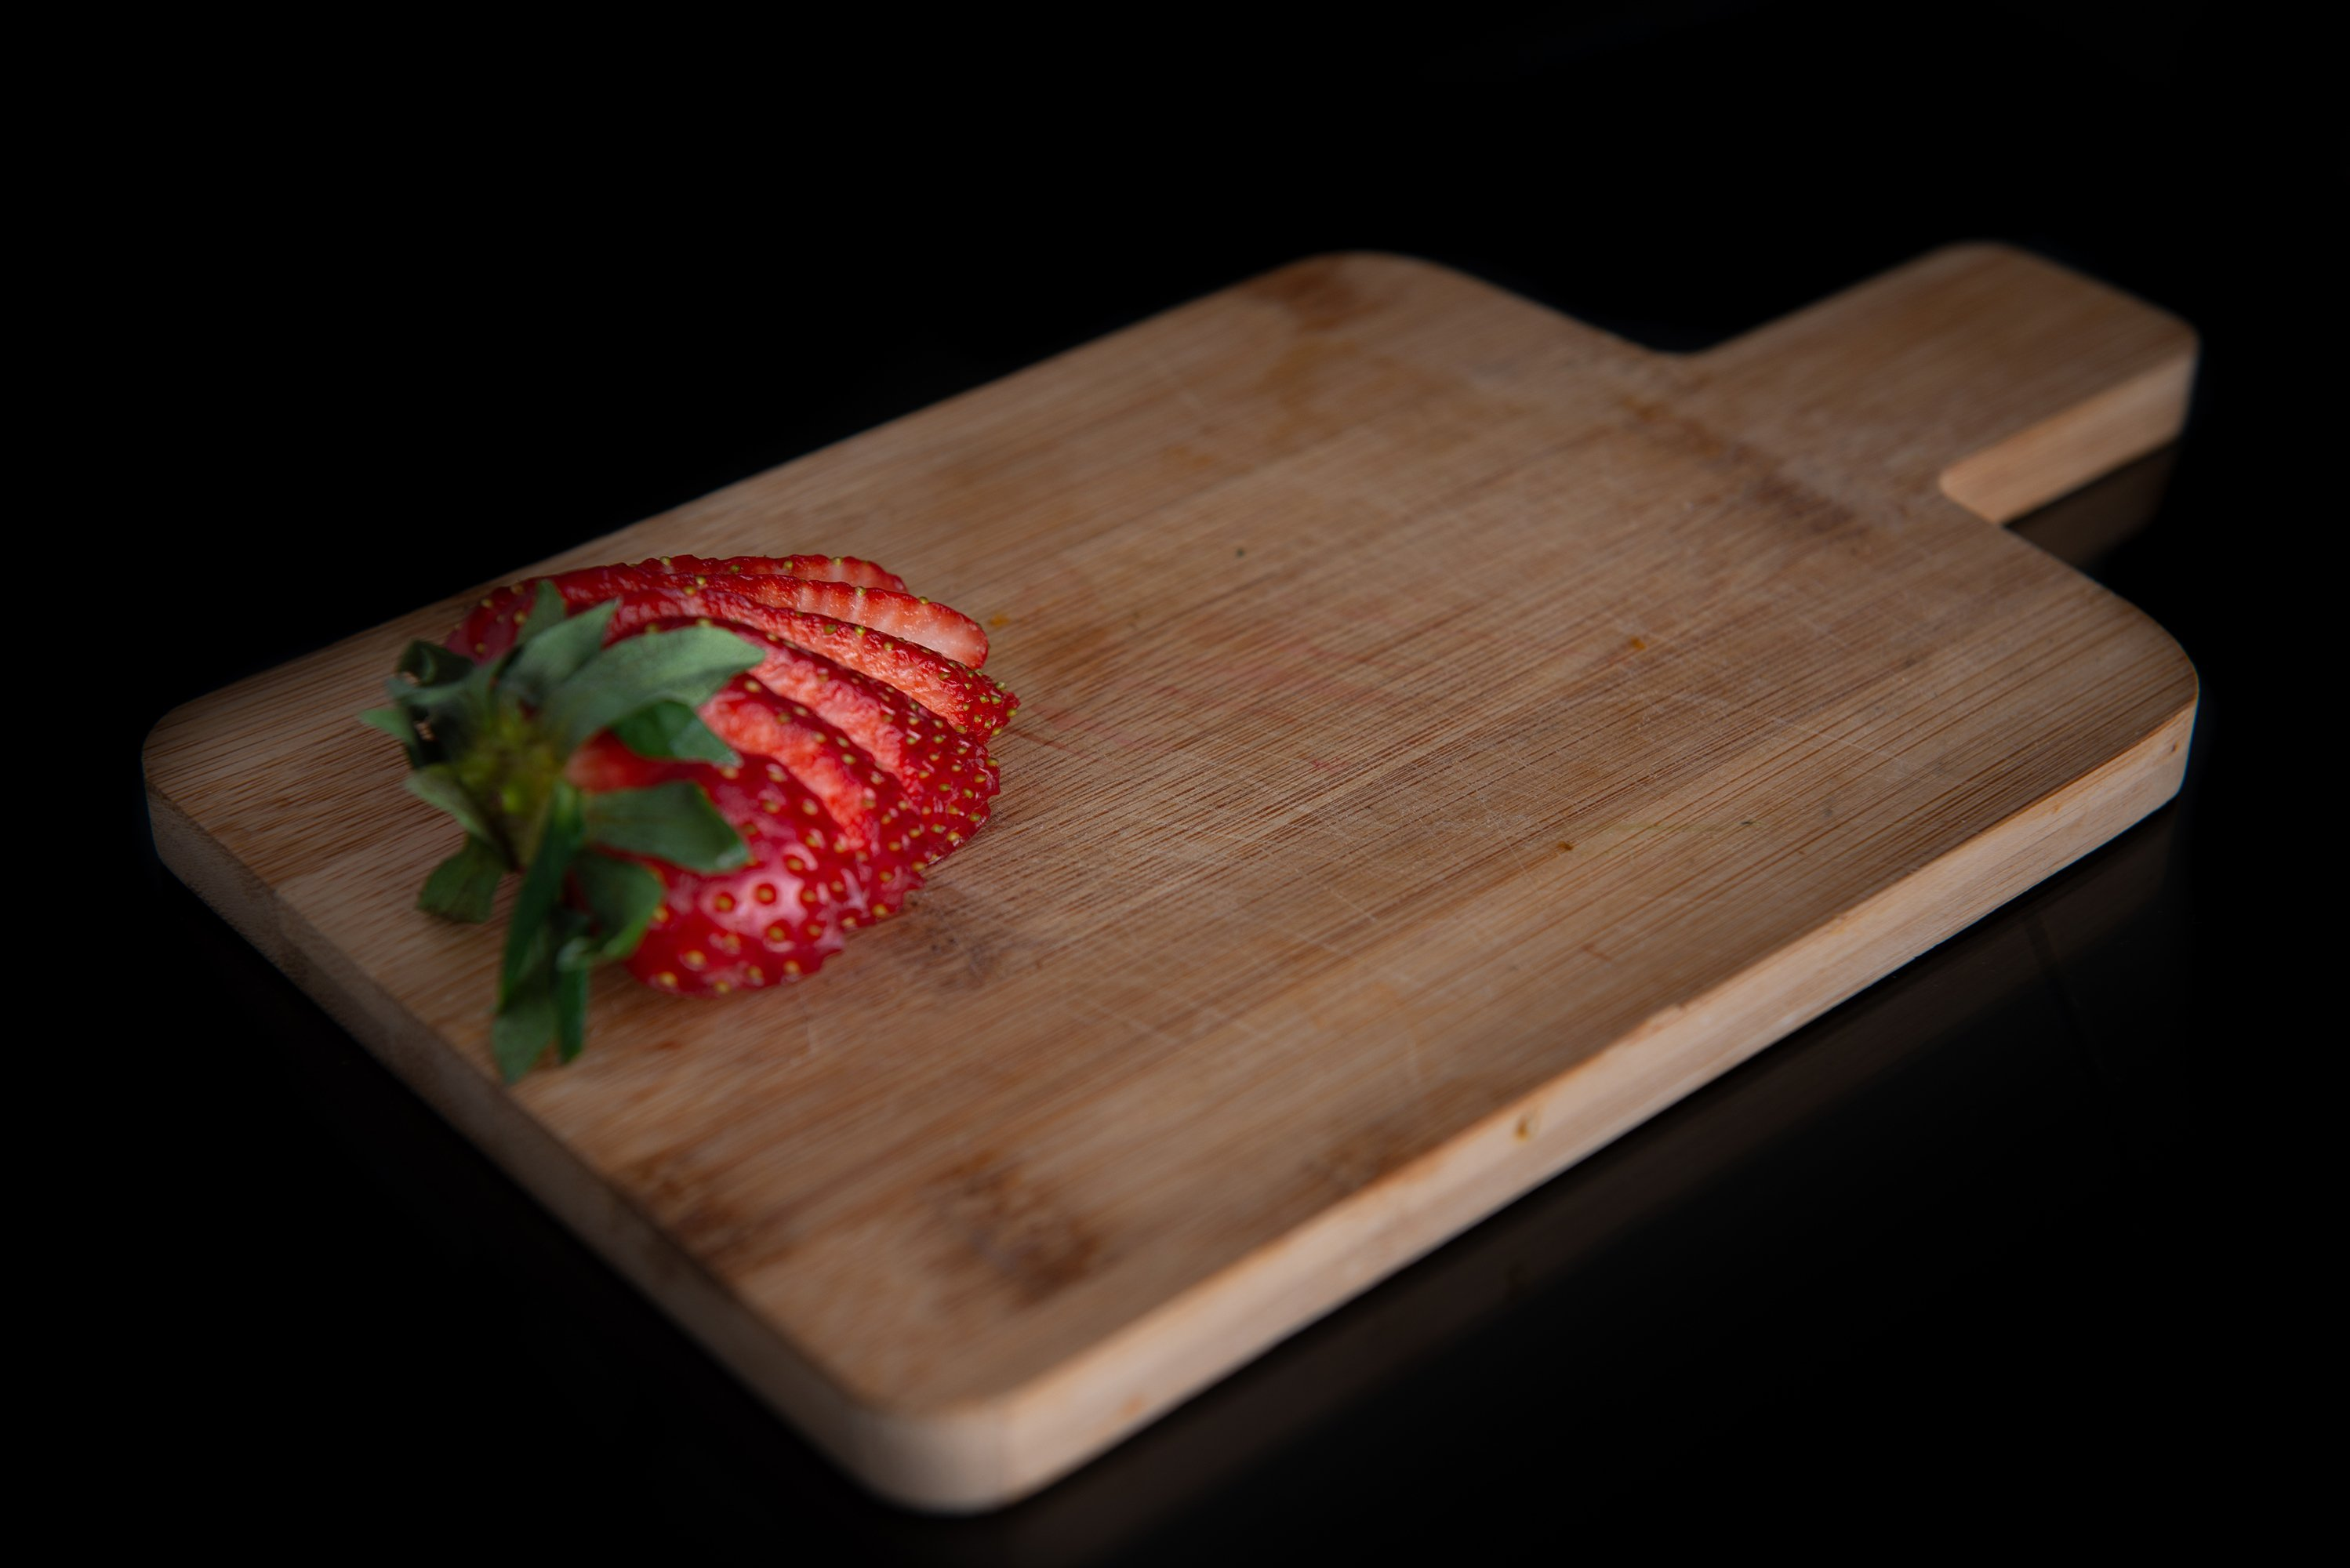 sliced strawberry on a wooden board with a place for text example image 1